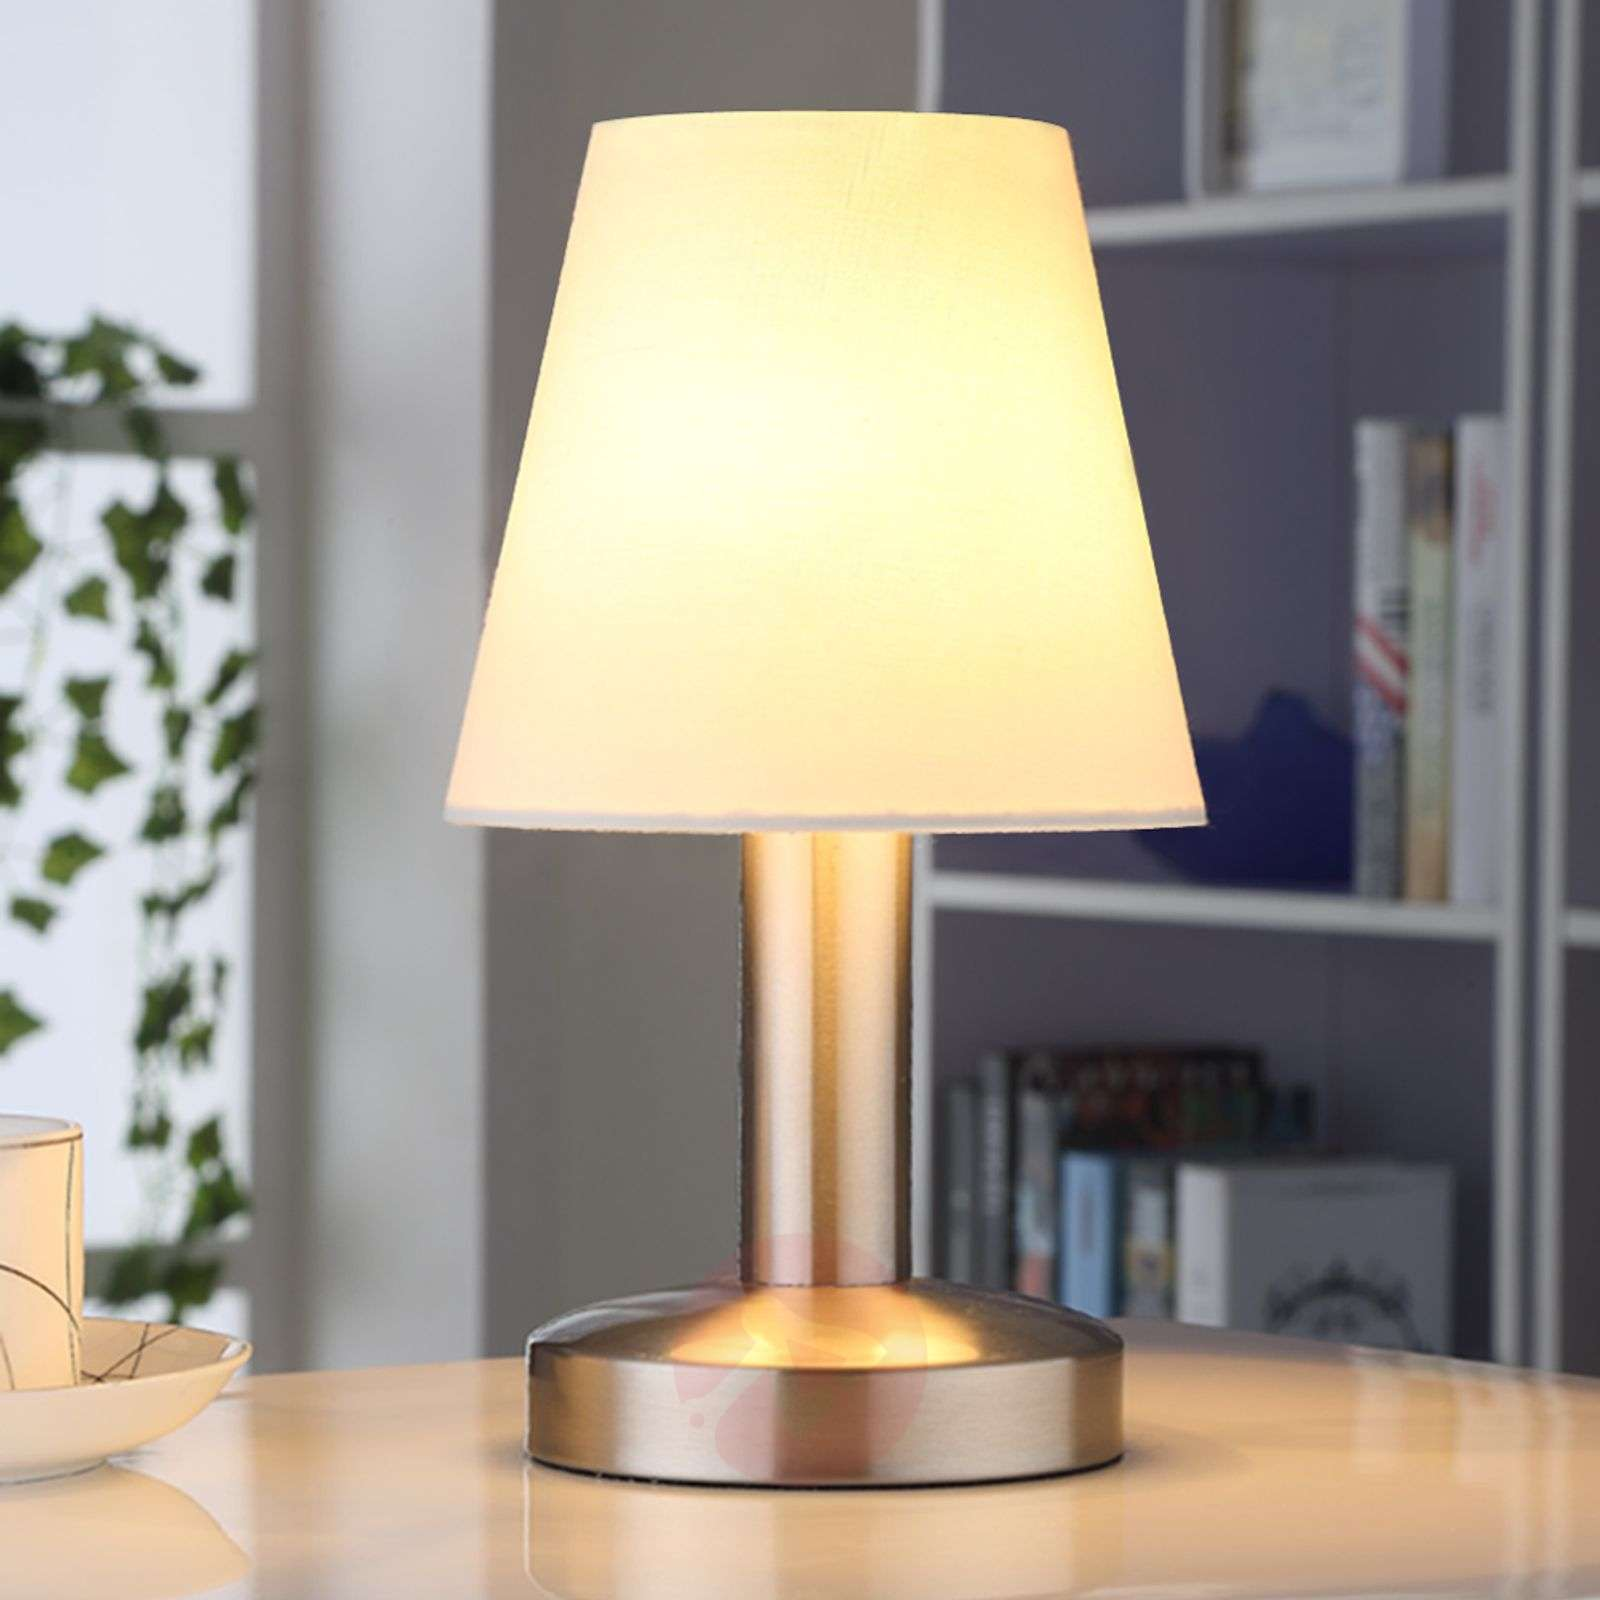 Bedside table lamp Hanno w. white fabric lampshade-9620810-01